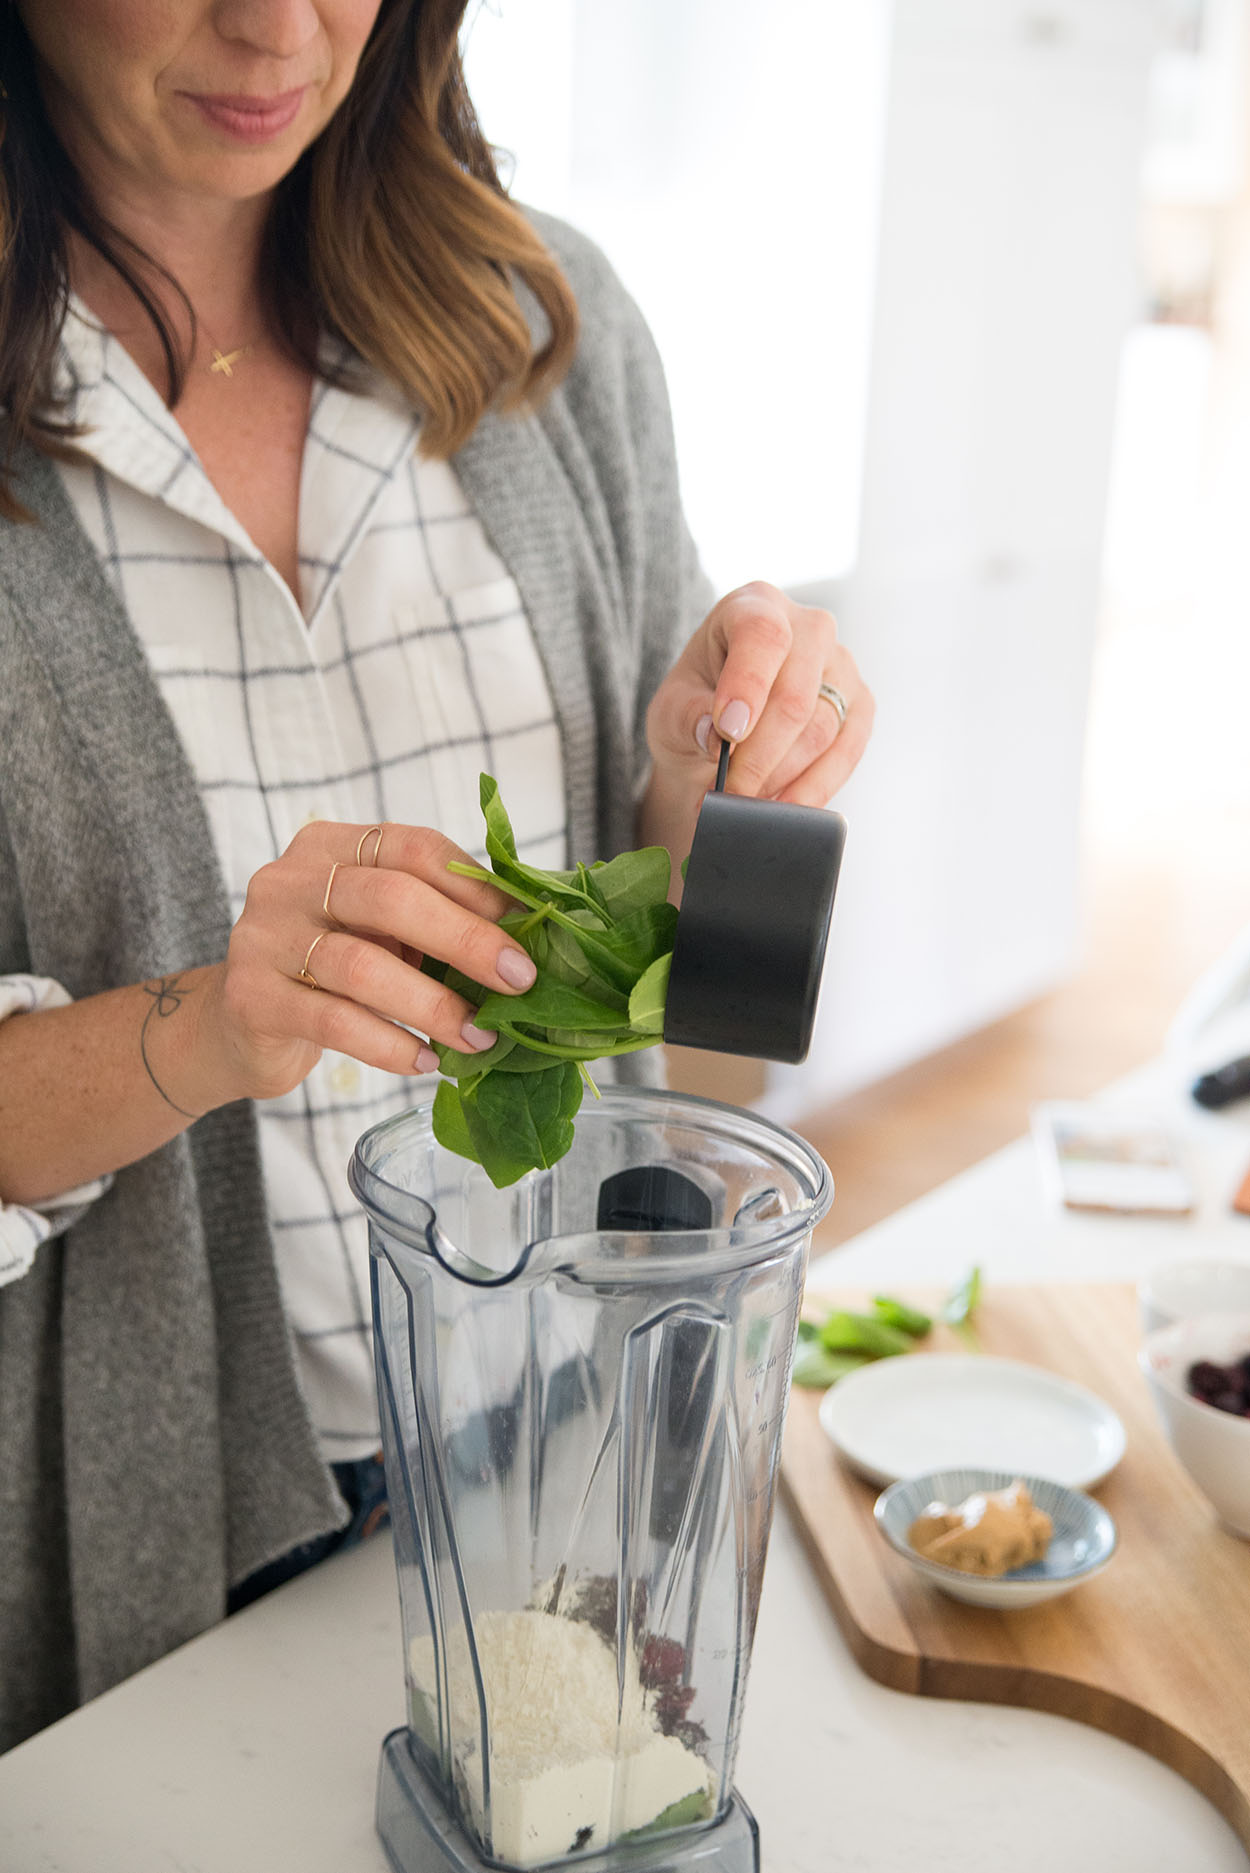 adding spinach to a blender to make a smoothie